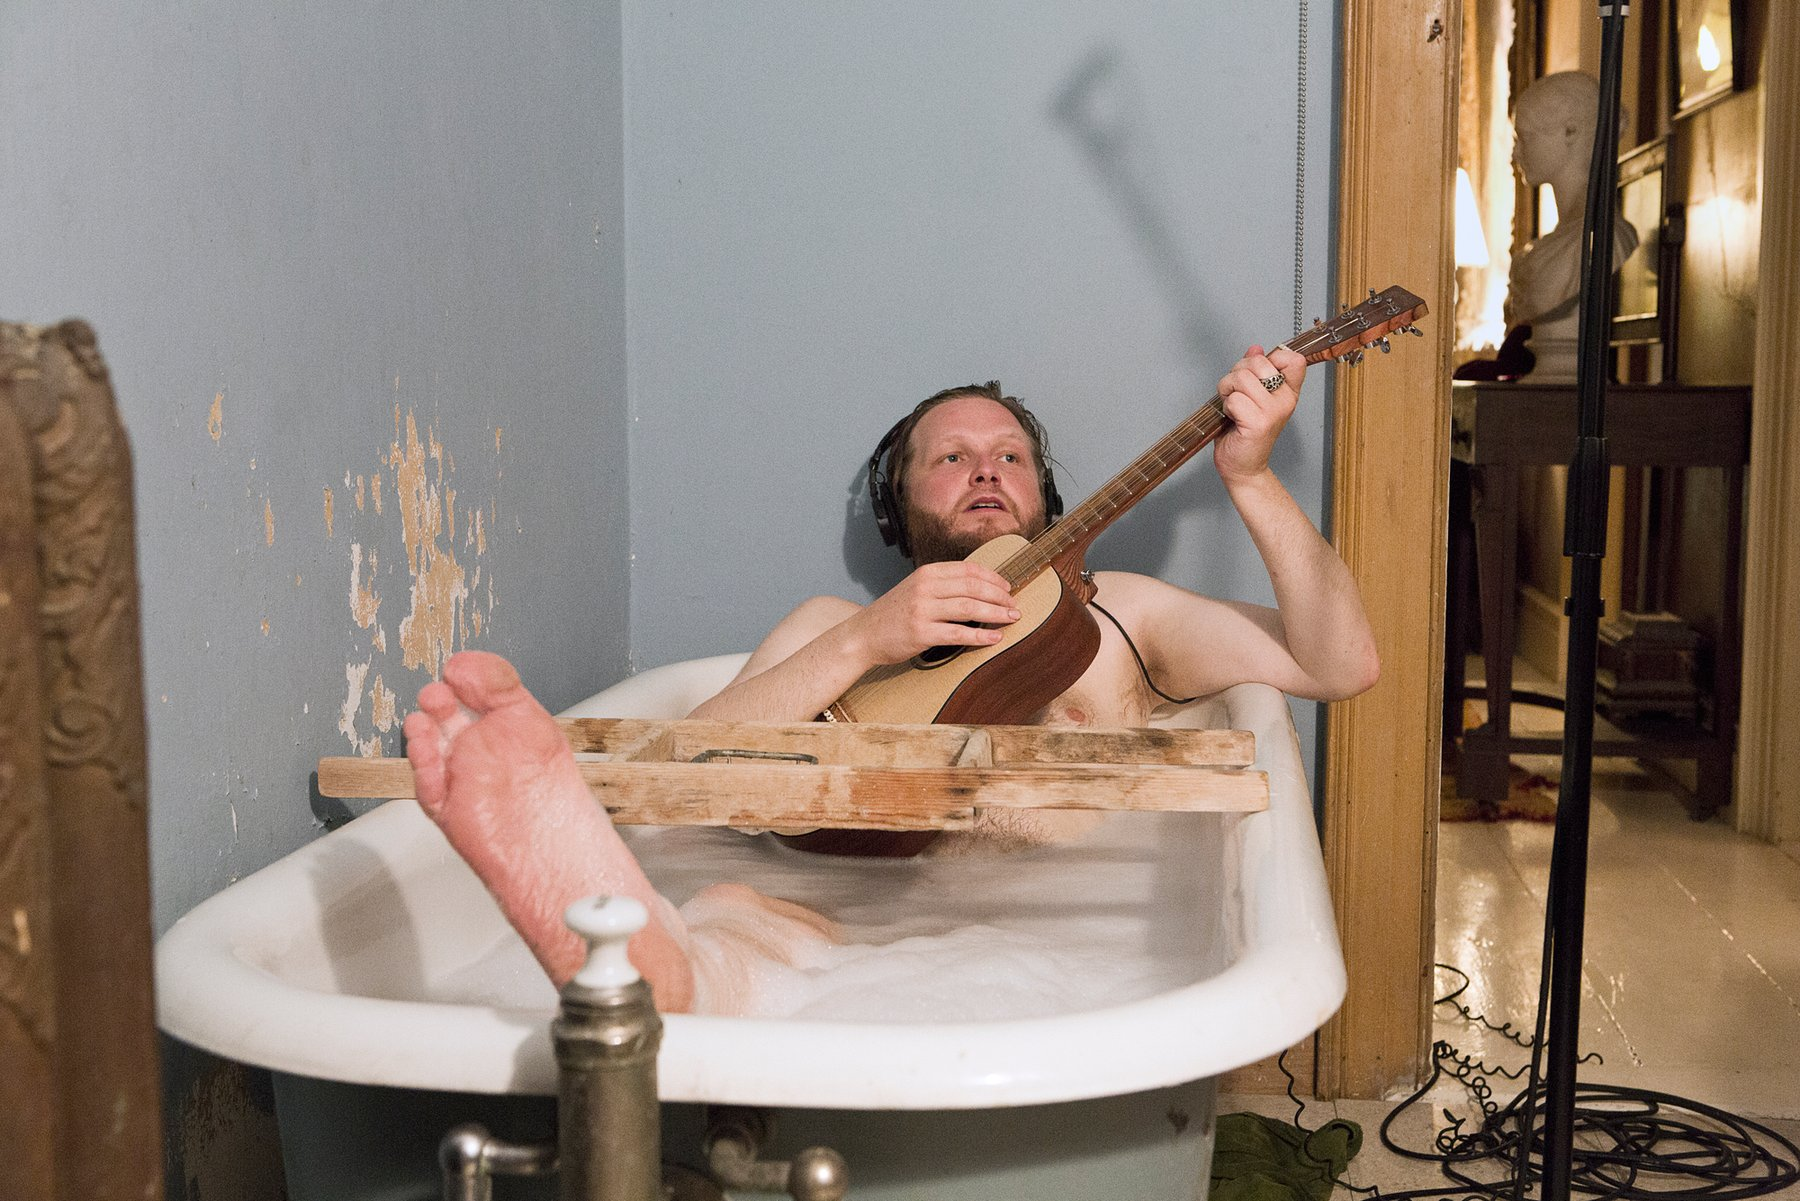 A naked Caucasian man plays the guitar in a bathtub, Kjartansson